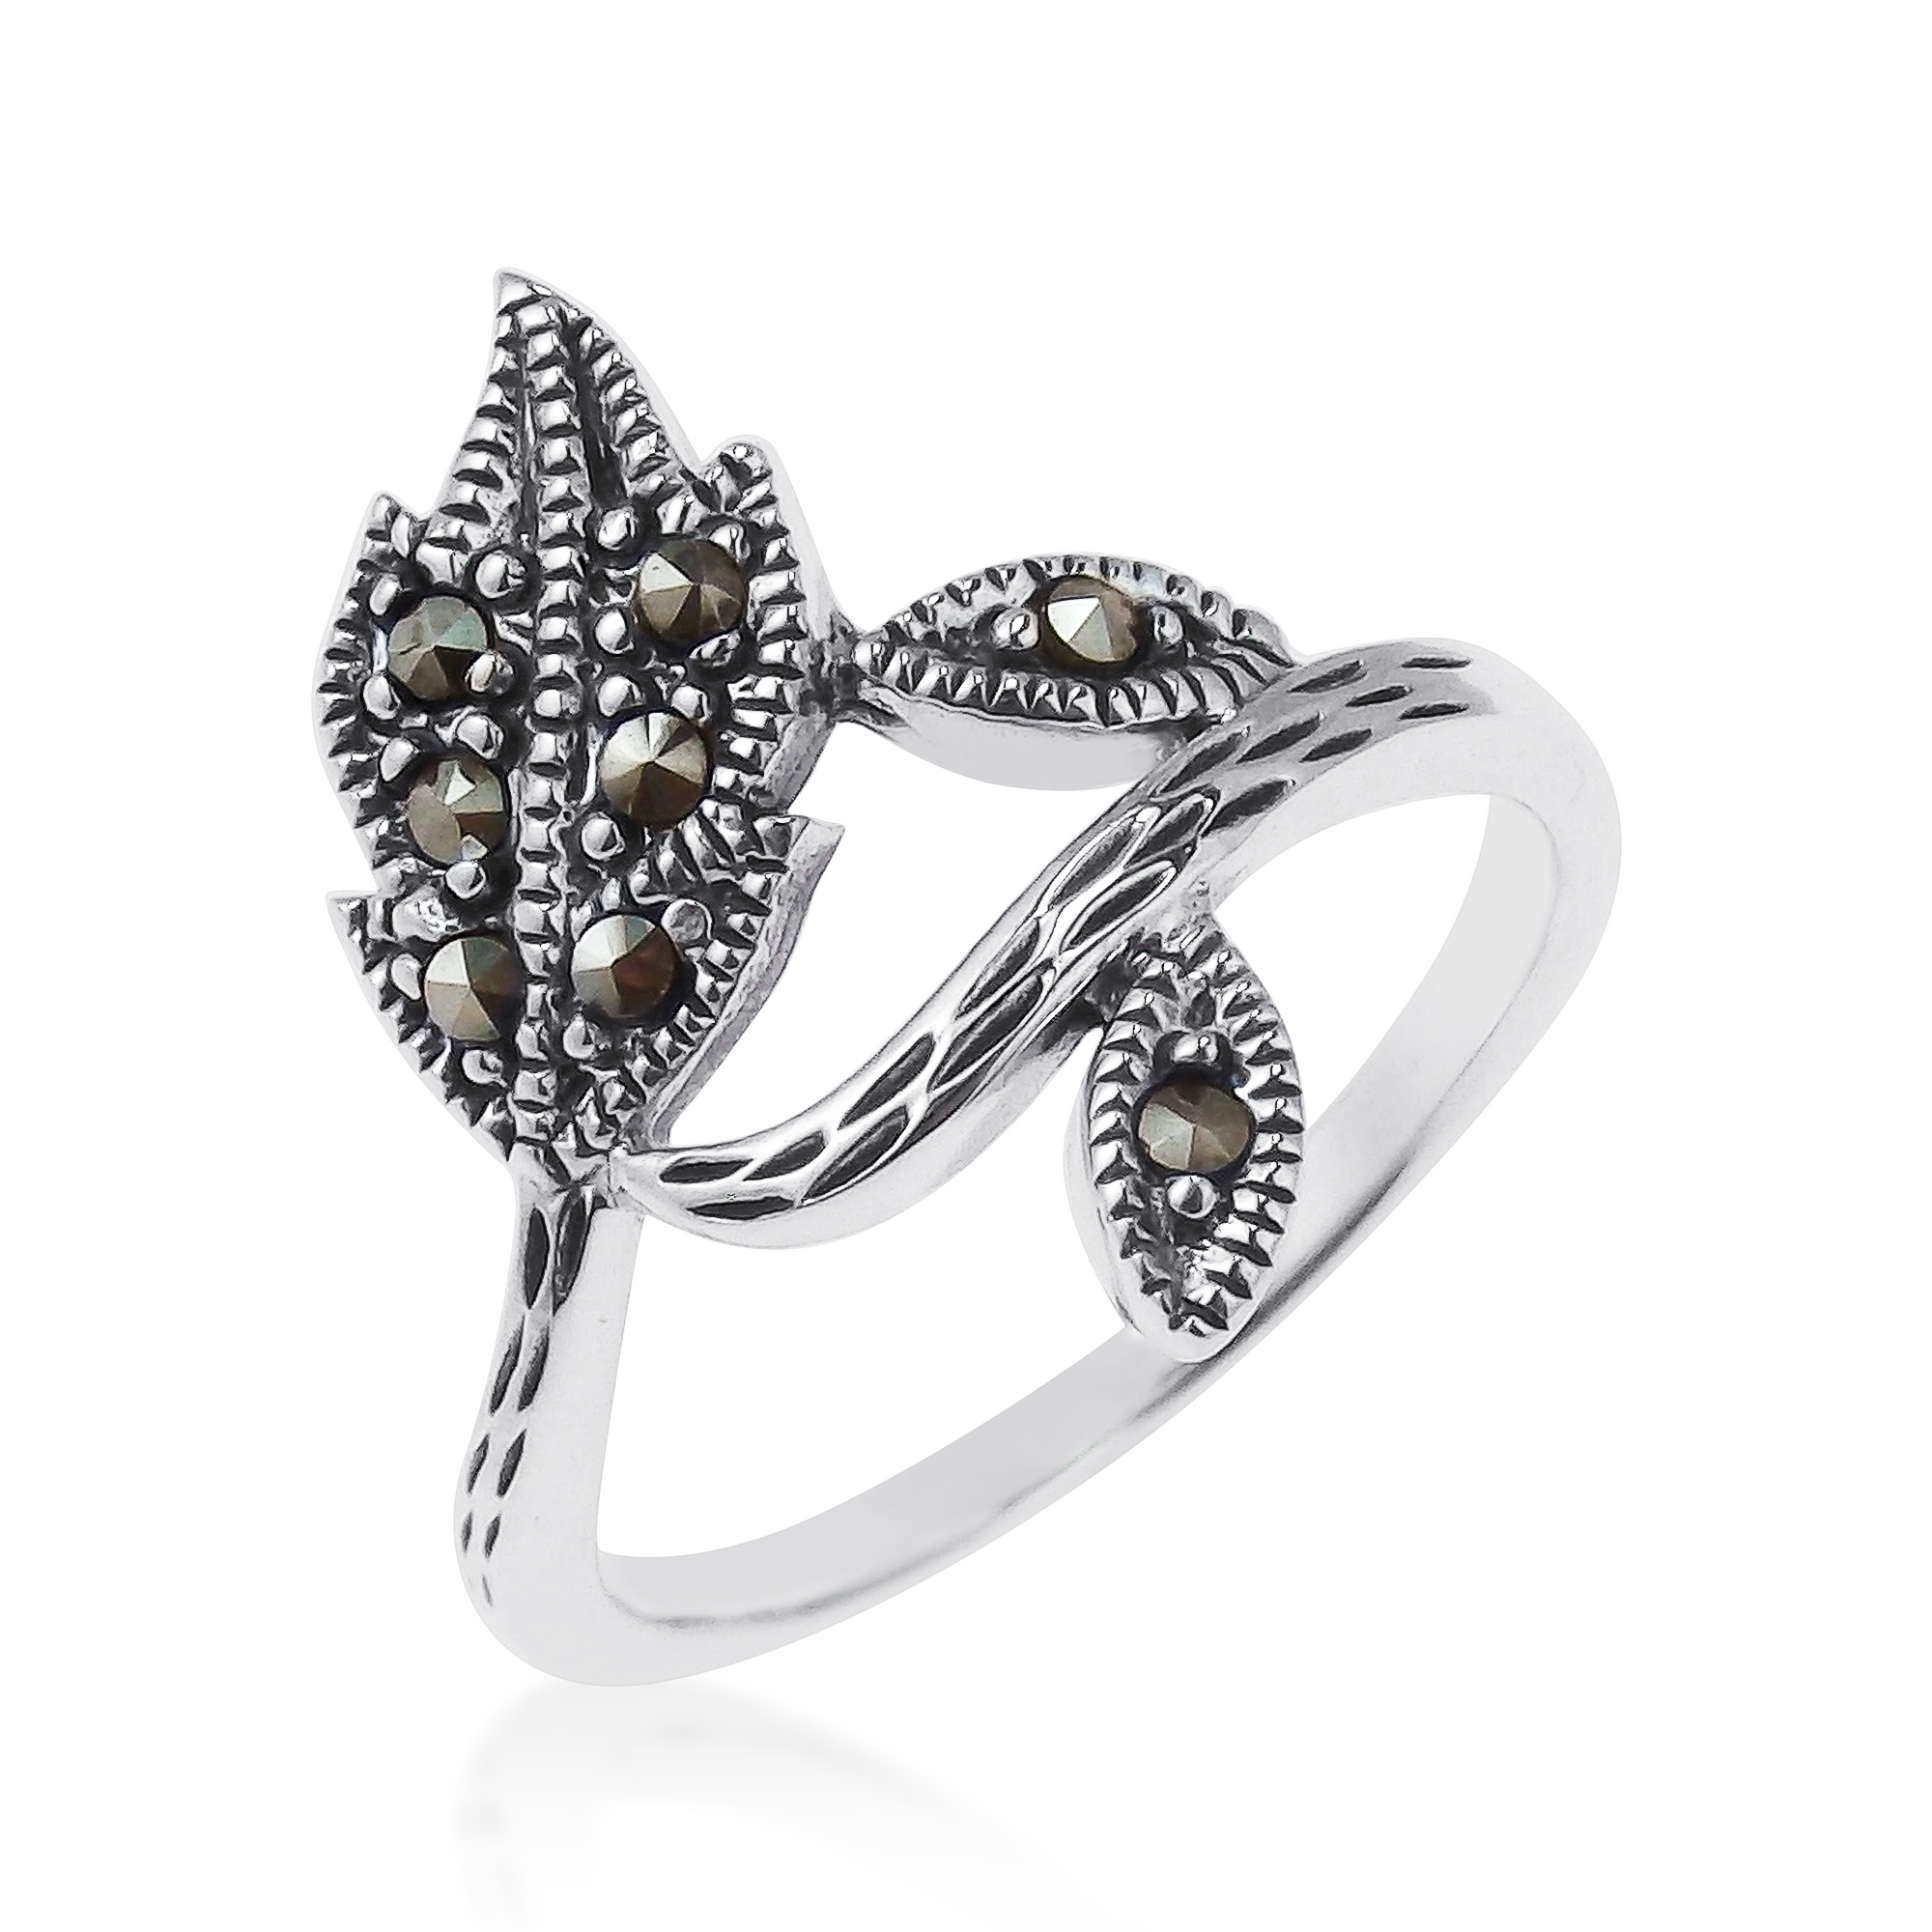 rings marcasite elements silver size circle r ring asp the shape diamond p